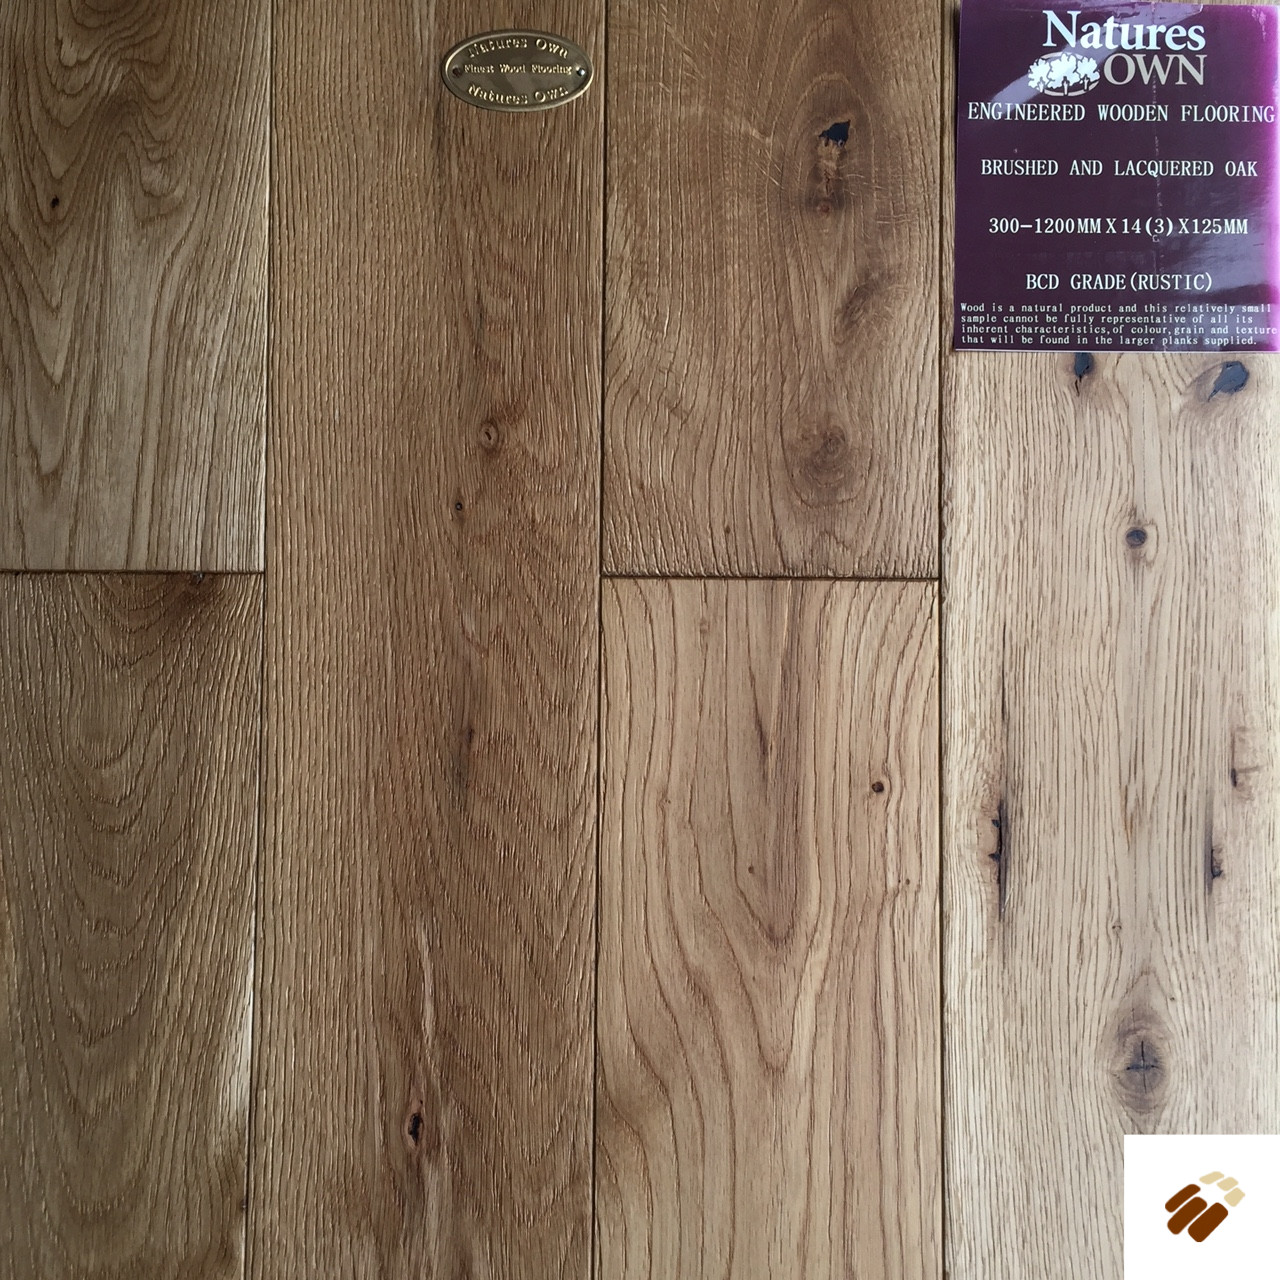 NATURES OWN: Oak Brushed & Lacquered (14/3 x 125mm)-0